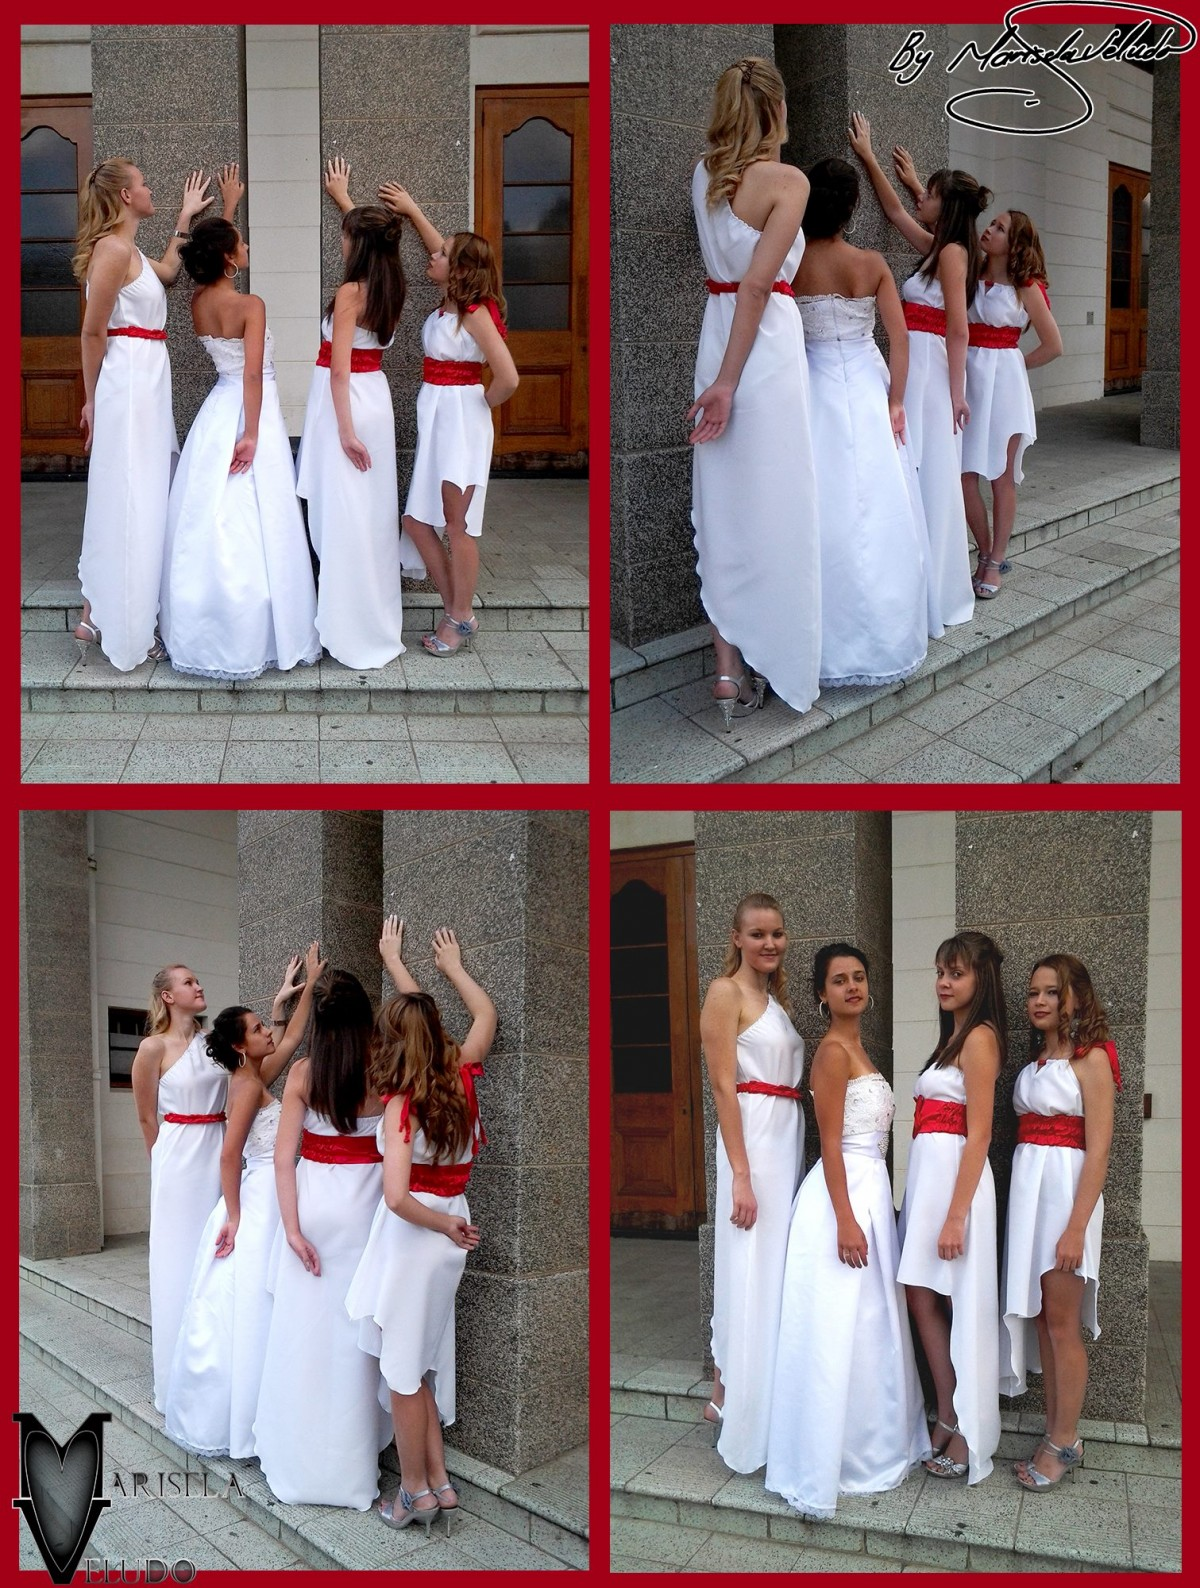 Angelic Memory by Marisela Veludo - Fashion Designer - A collection of white dresses with red detailing.